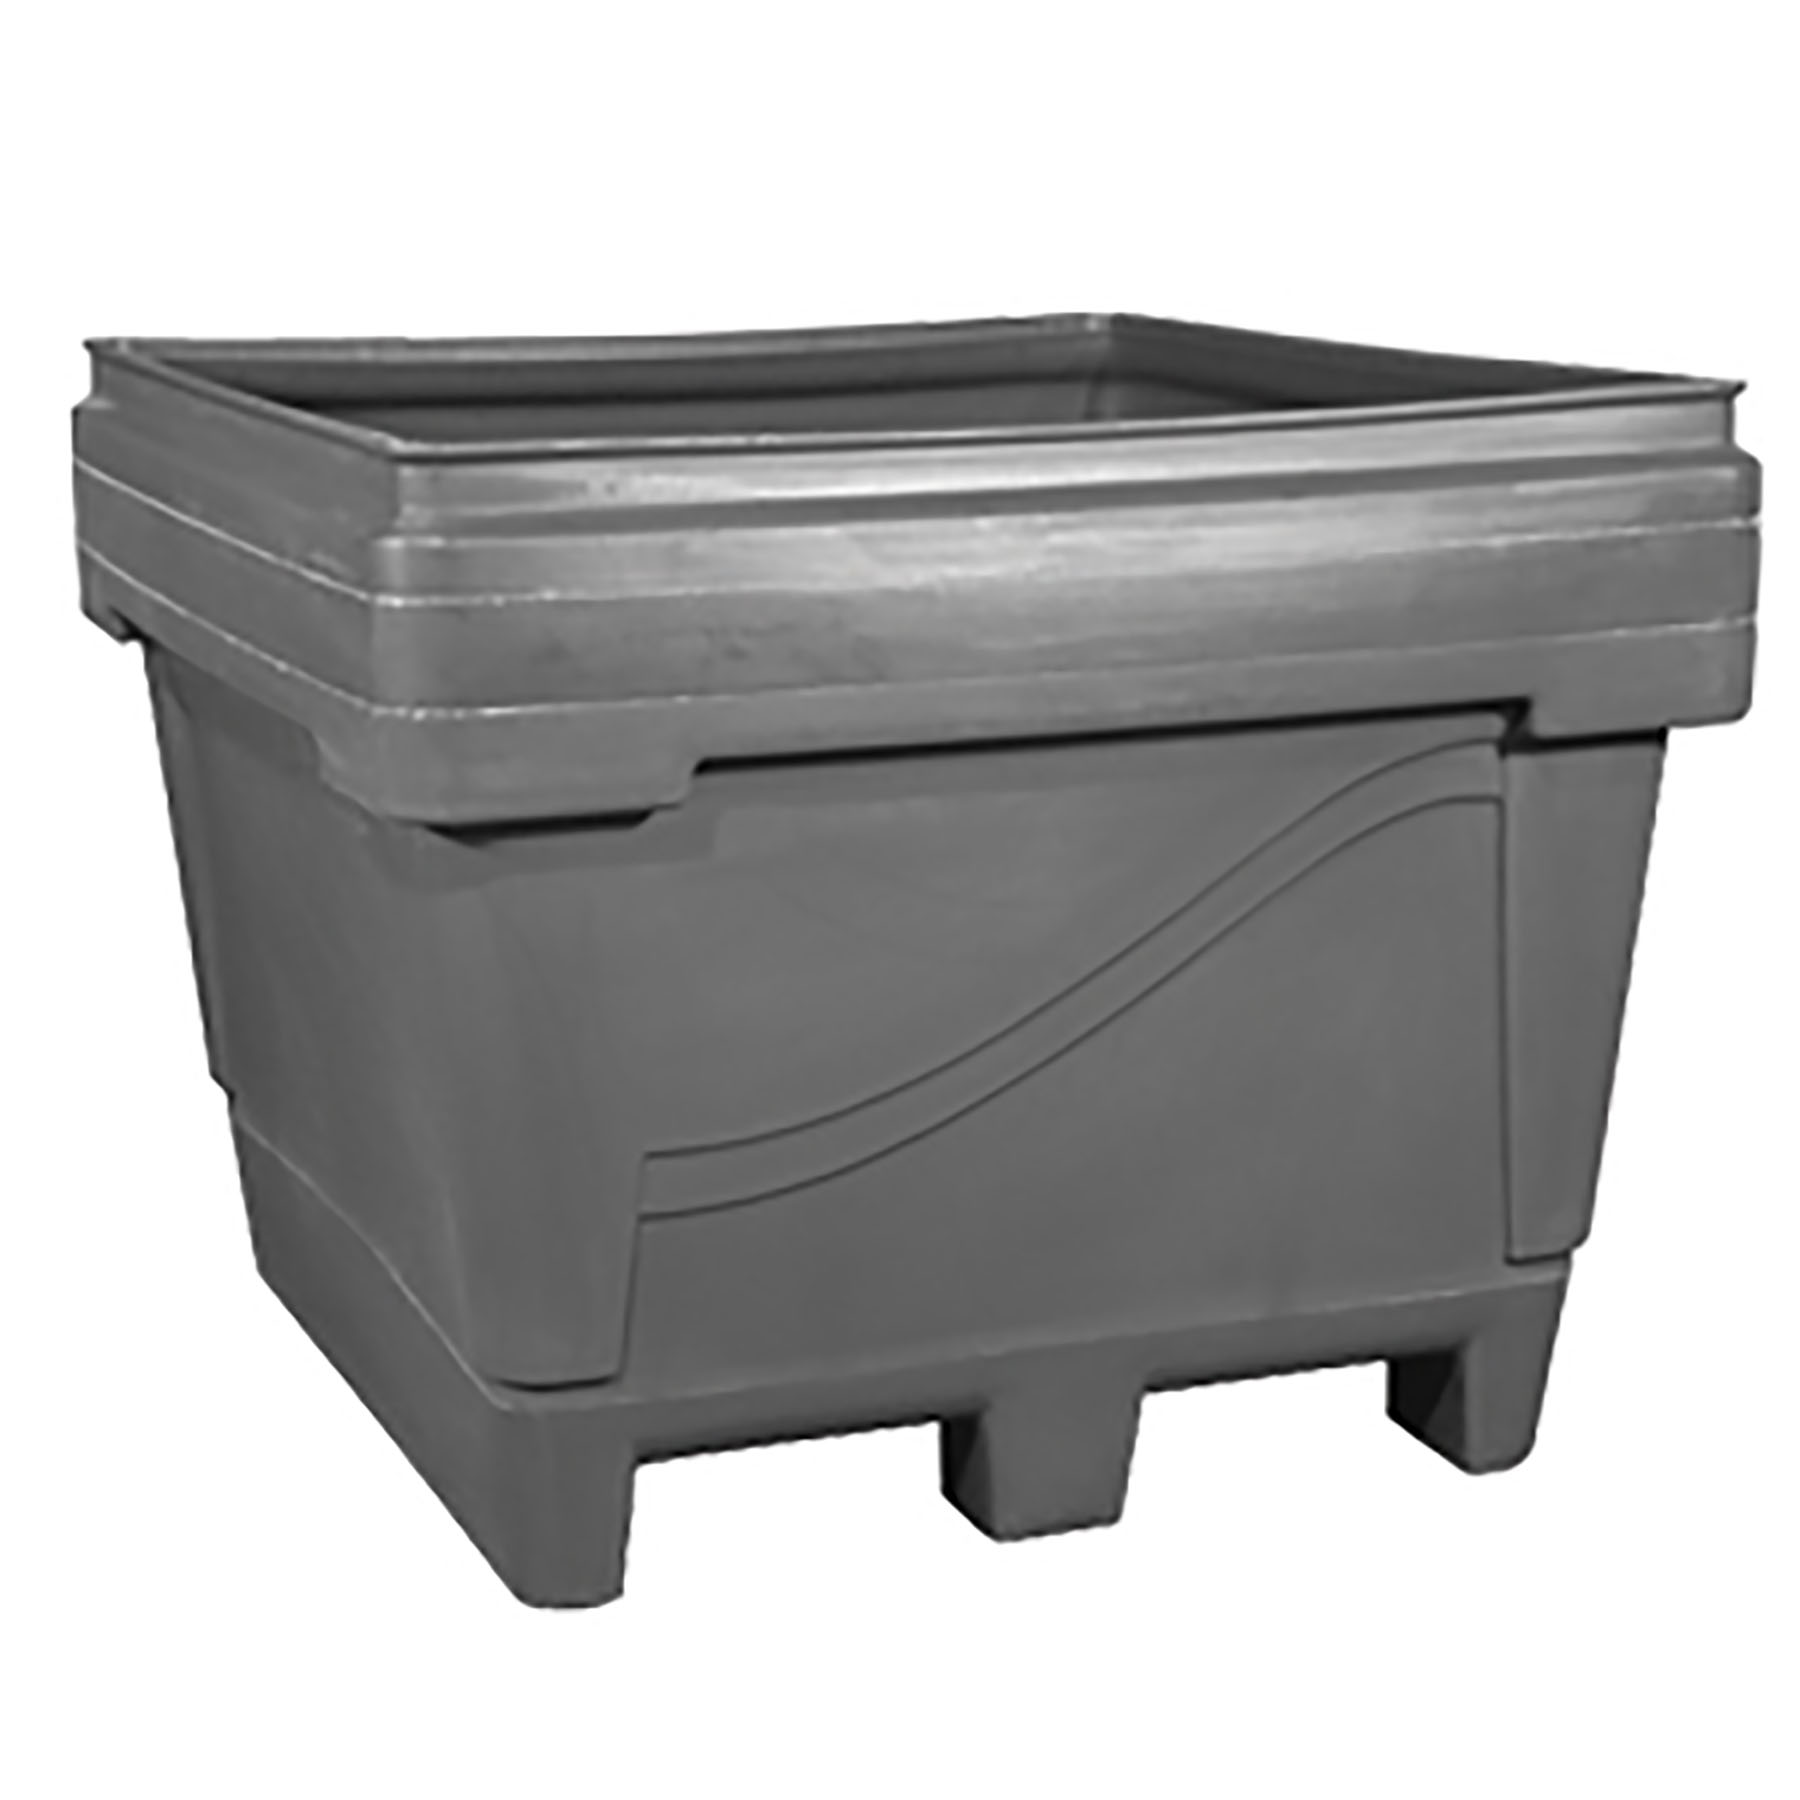 Heavy Duty Bins